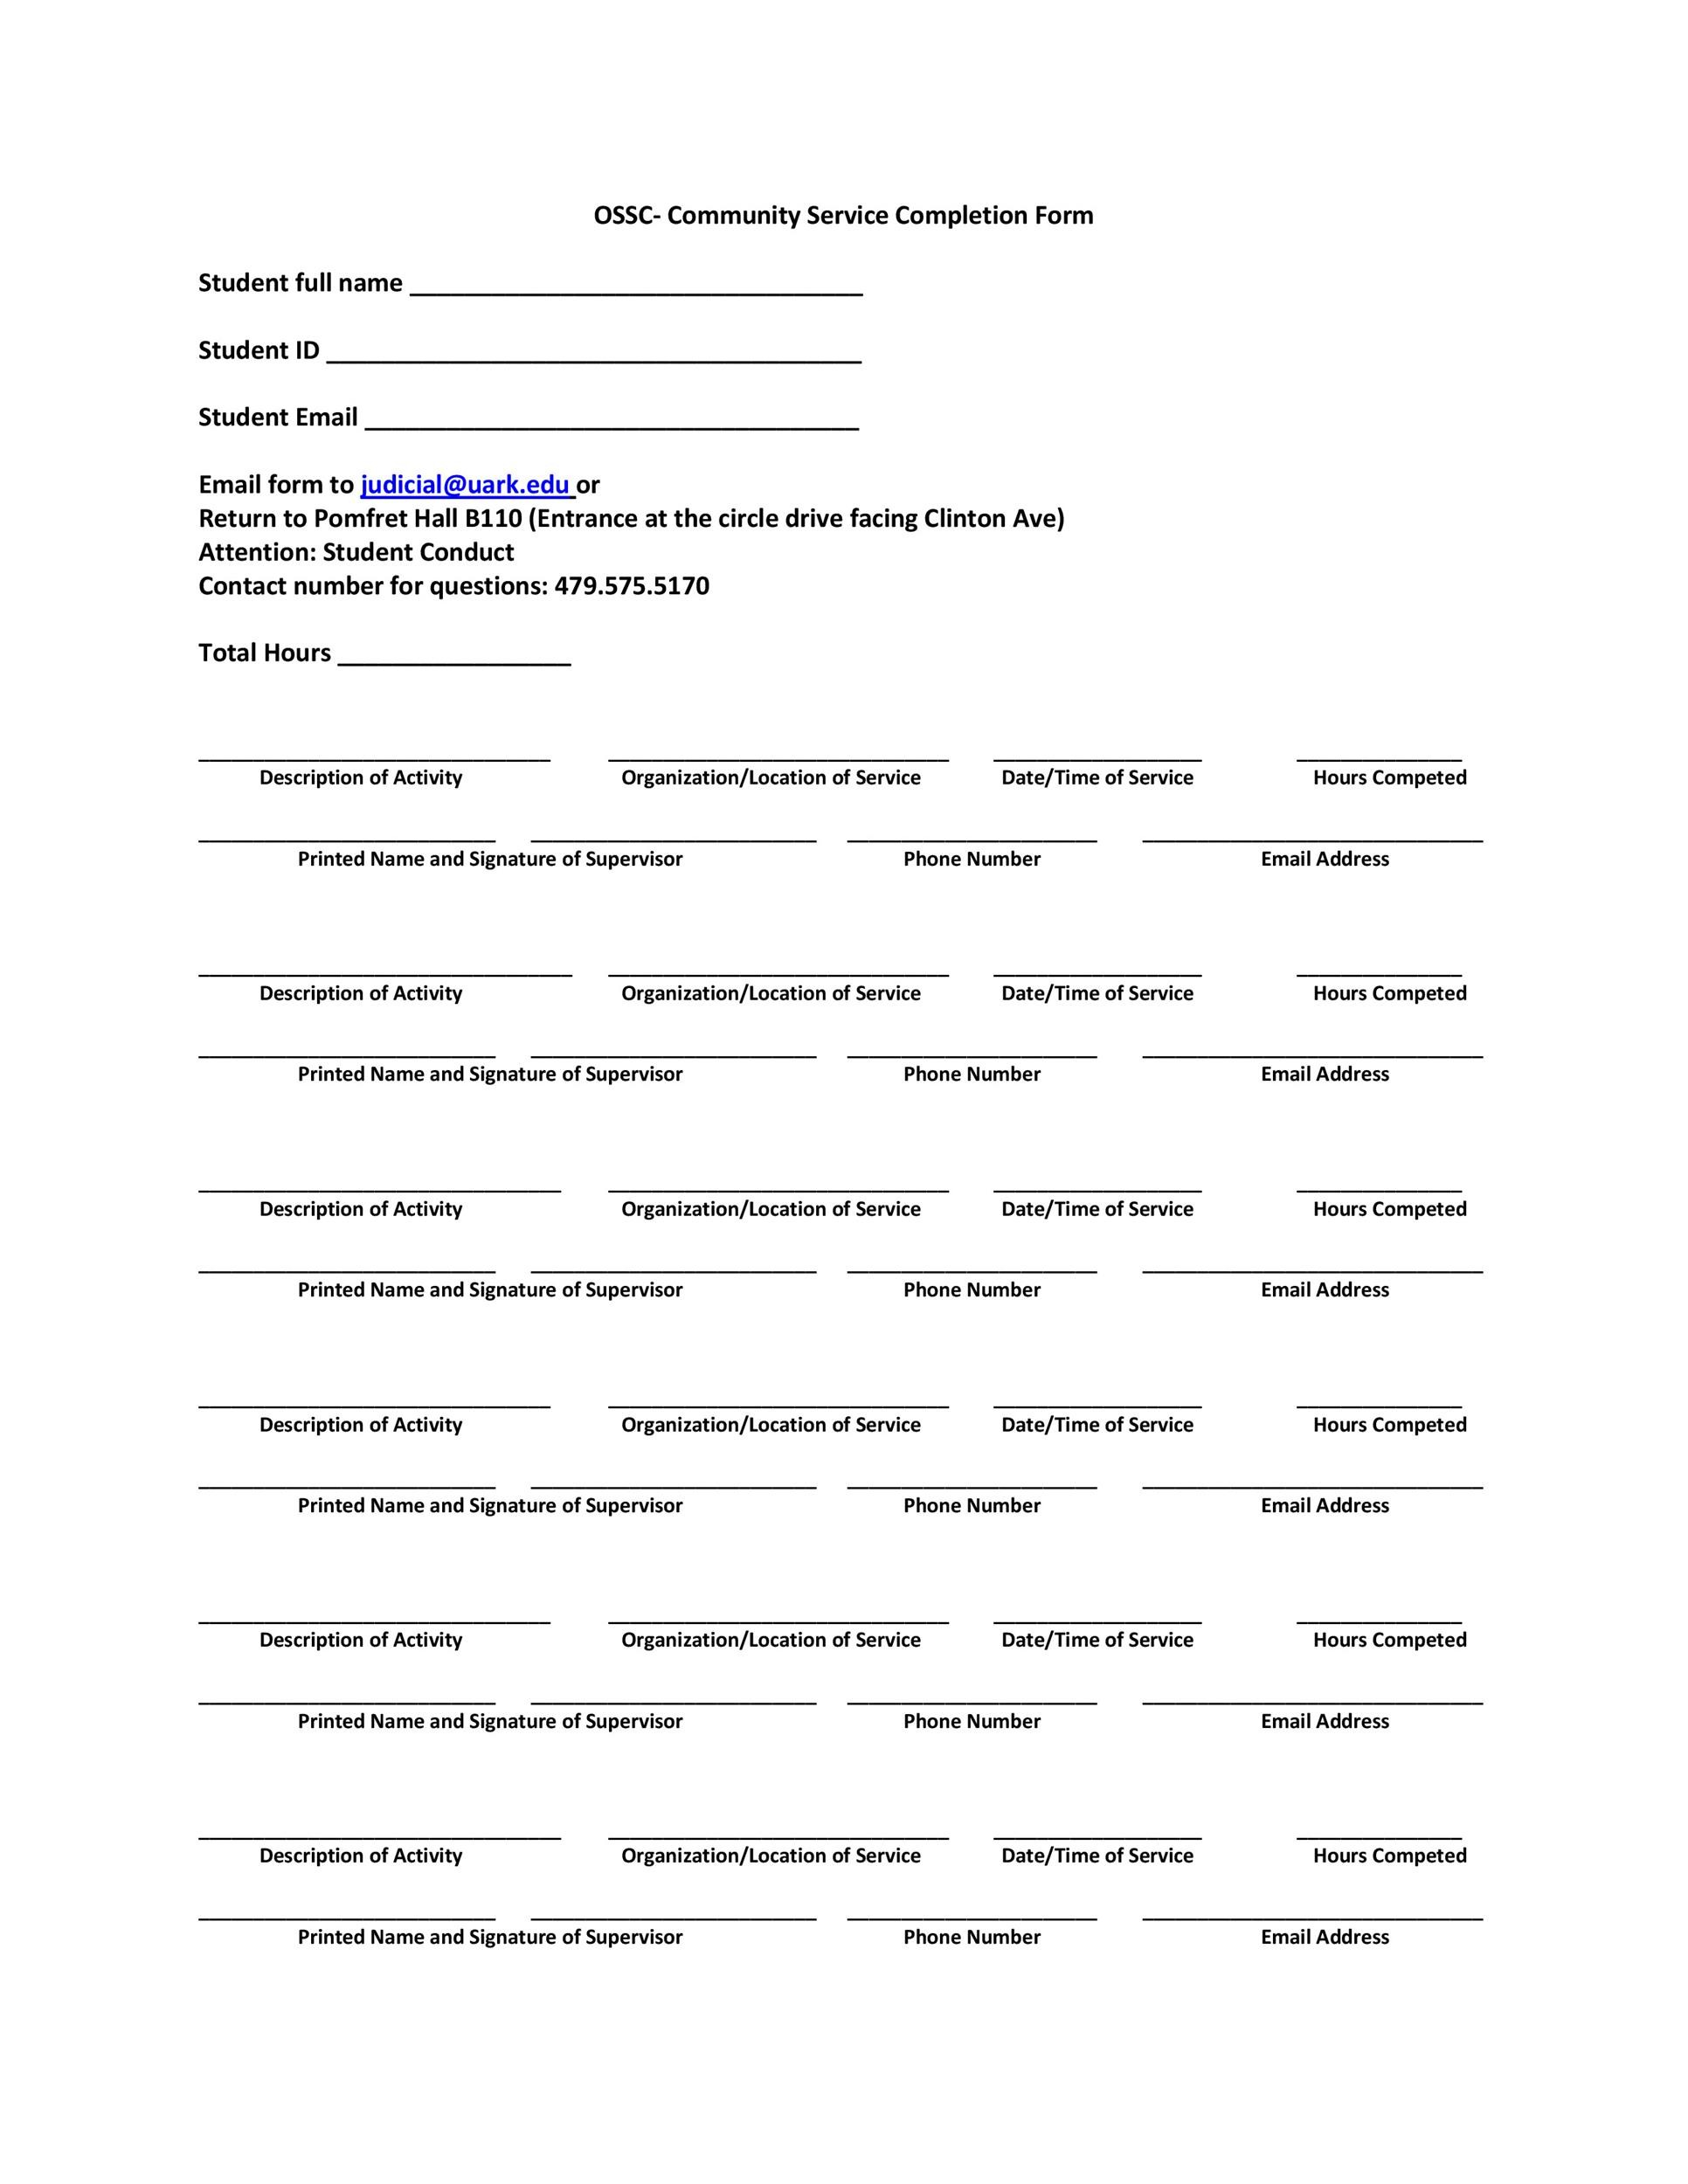 proof of volunteer hours template, volunteer request letter template, volunteer for community service letter, volunteer service hours letter, volunteer letters of the month, community service hours template, volunteer hours certificate templates, student volunteer hours template, volunteer letter for nurse, volunteer hours log, volunteer invitation letter, volunteer recommendation letter template, volunteer hours form template, volunteer verification letter template, volunteer hours record sheet template, volunteer completion letter, on volunteer hours completion letter template